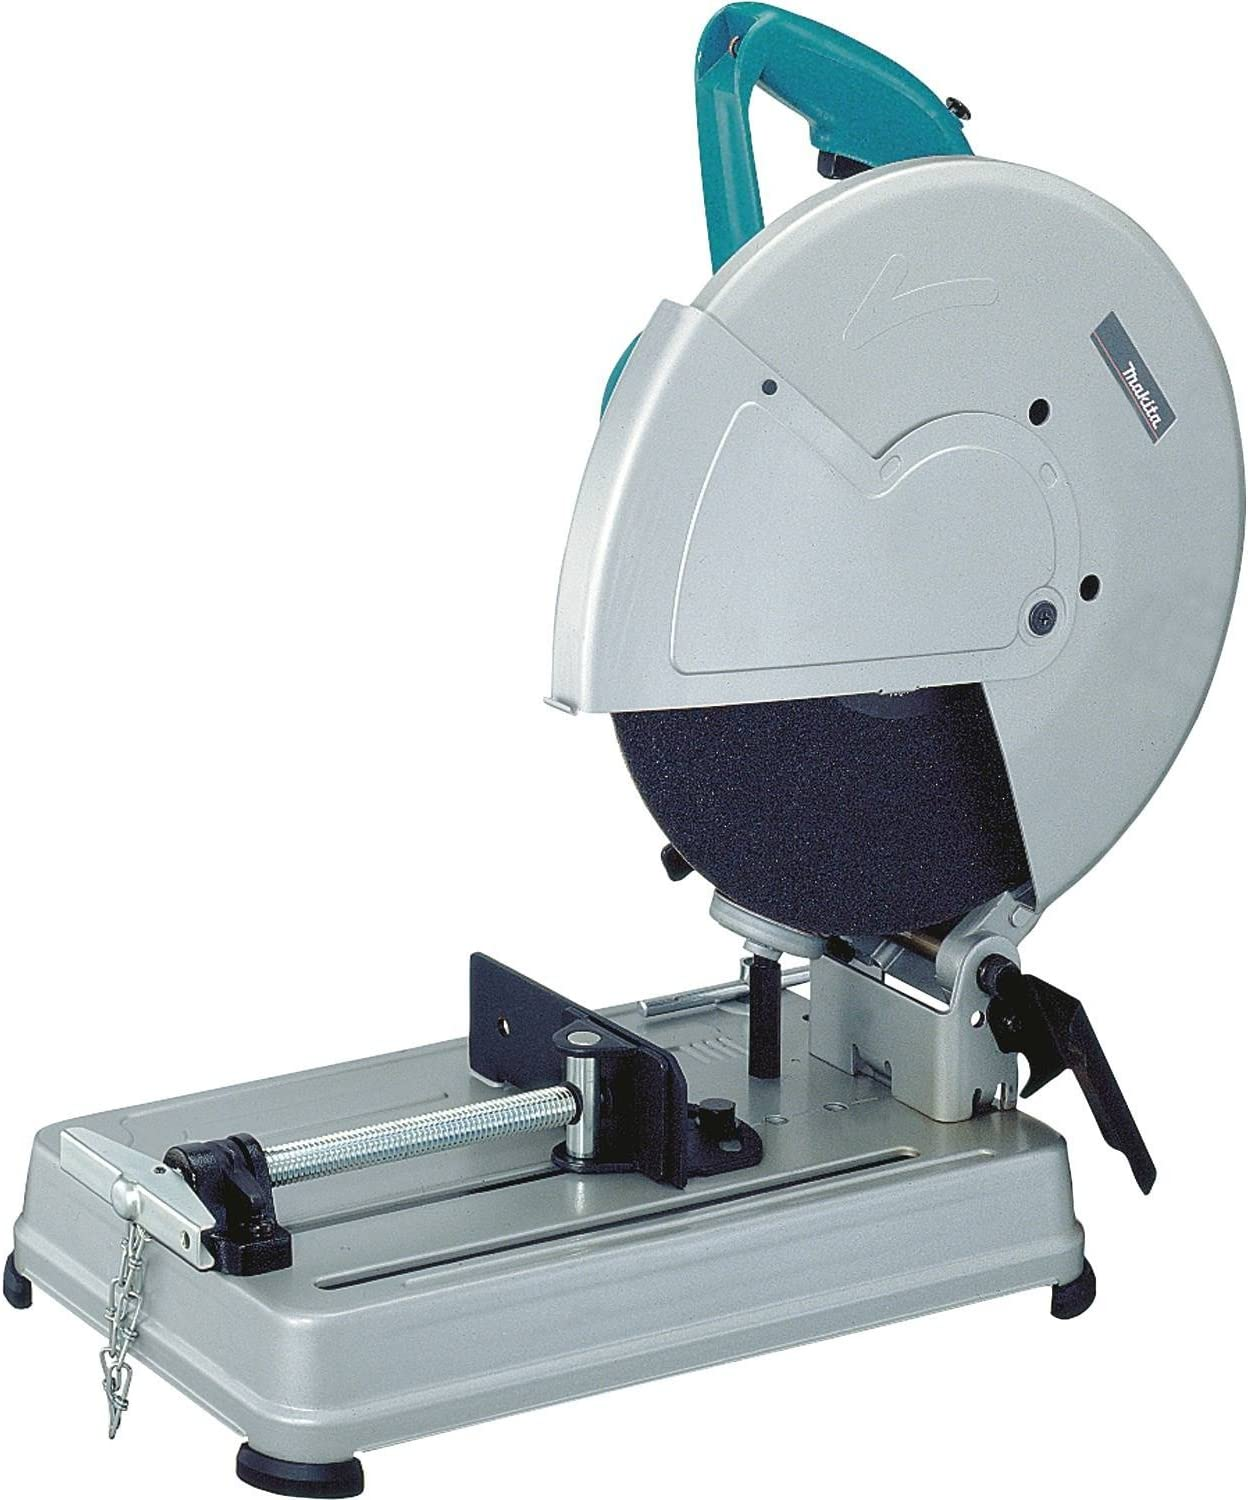 B0000223J5 Makita 2414NB 14-Inch Portable Cut-Off Saw (Discontinued by Manufacturer) 71Q5xeCiVQL.SL1500_